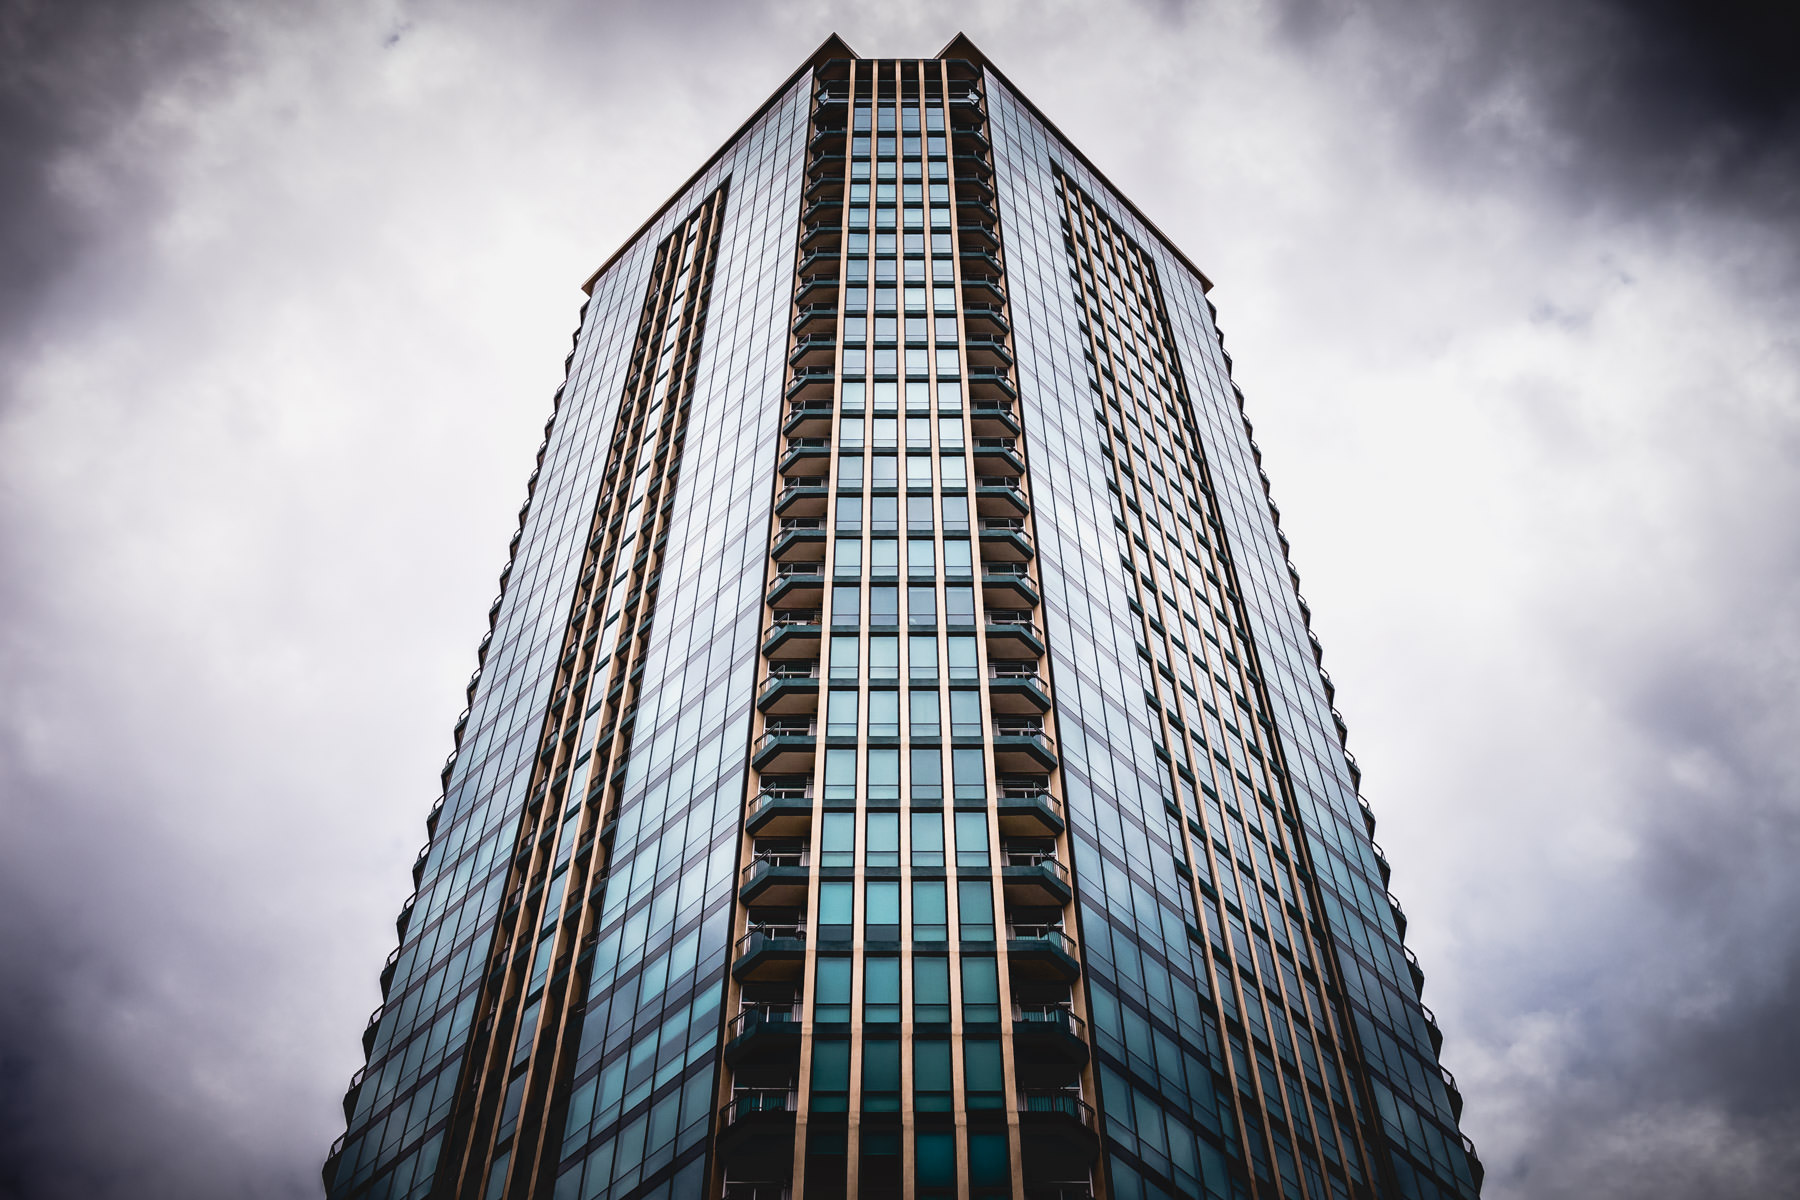 Fort Worth's tallest residential building—The Tower—rises into the cloudy, rain-laden North Texas sky.